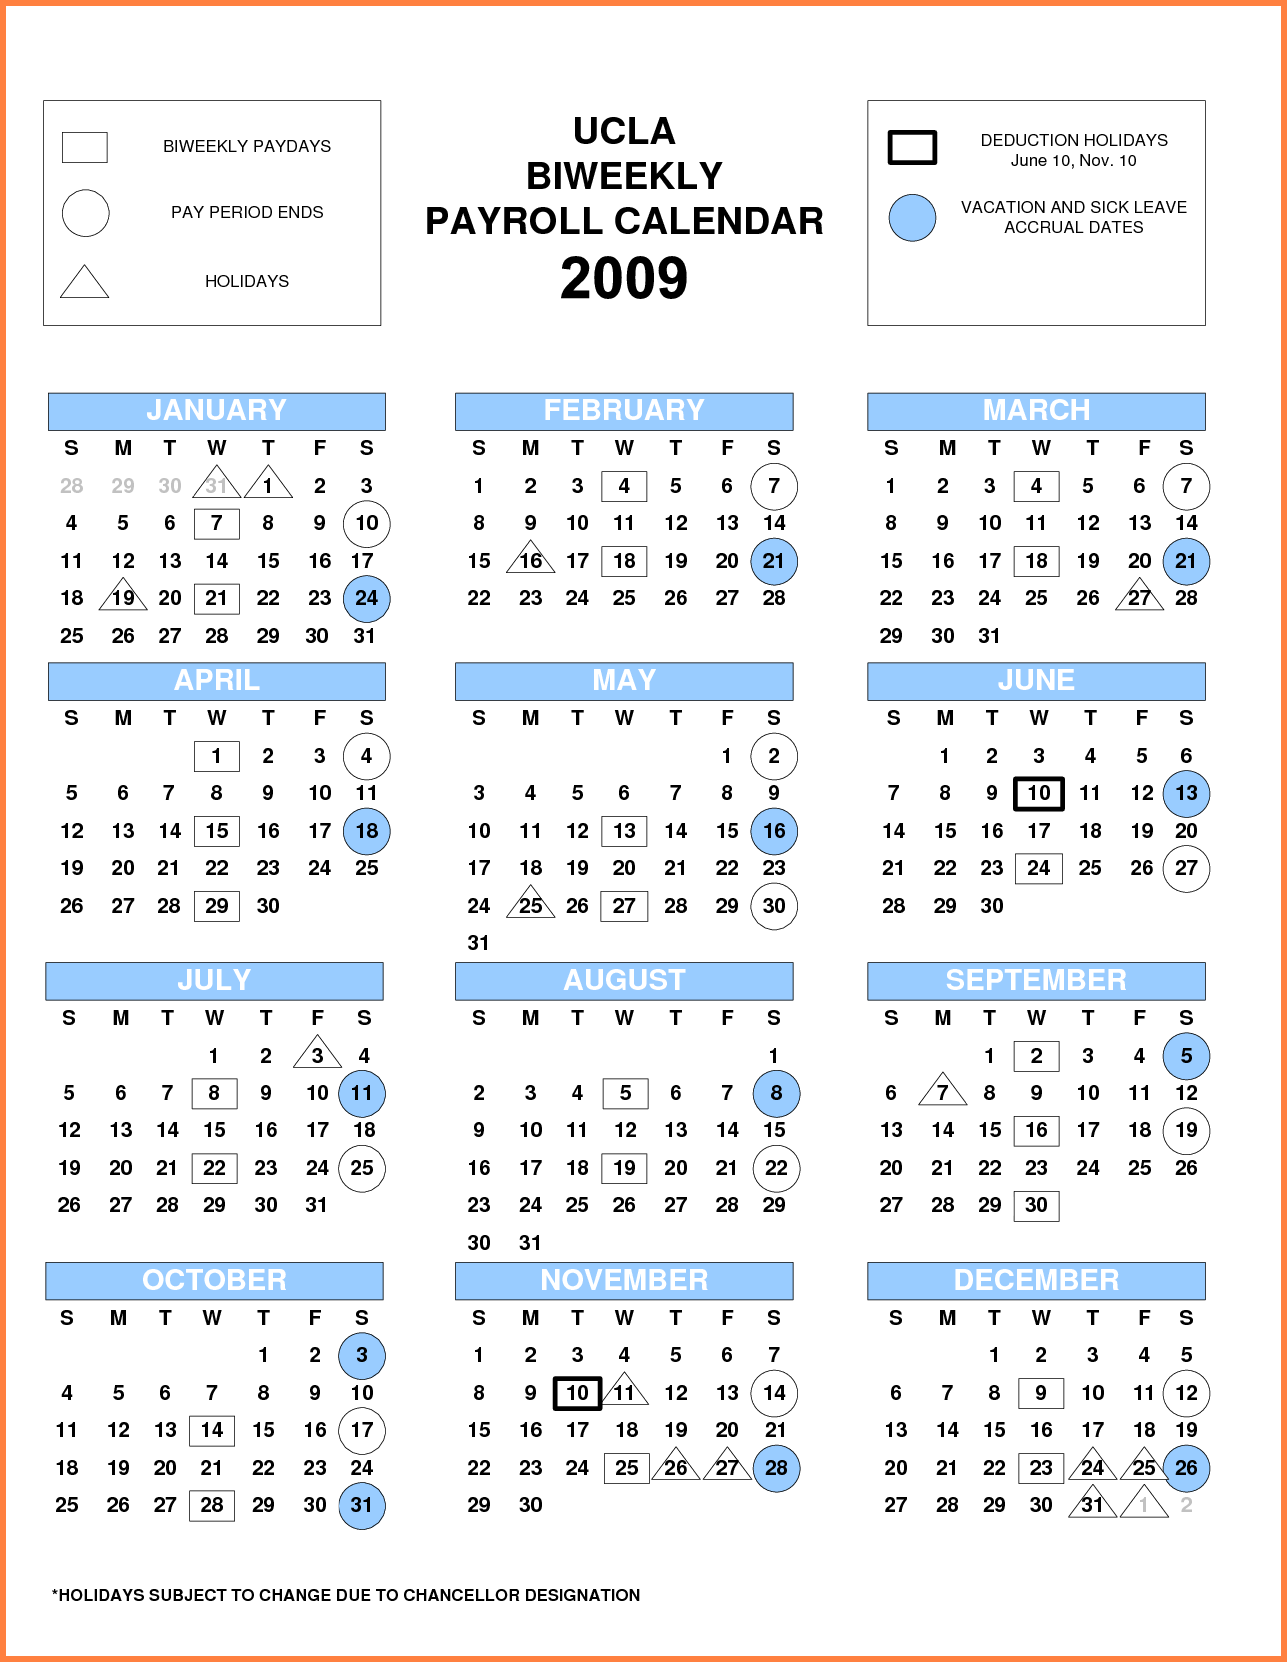 Every Two Weeks Schedule | Payroll Calendars within Adventhealth Payroll Calendar 2020